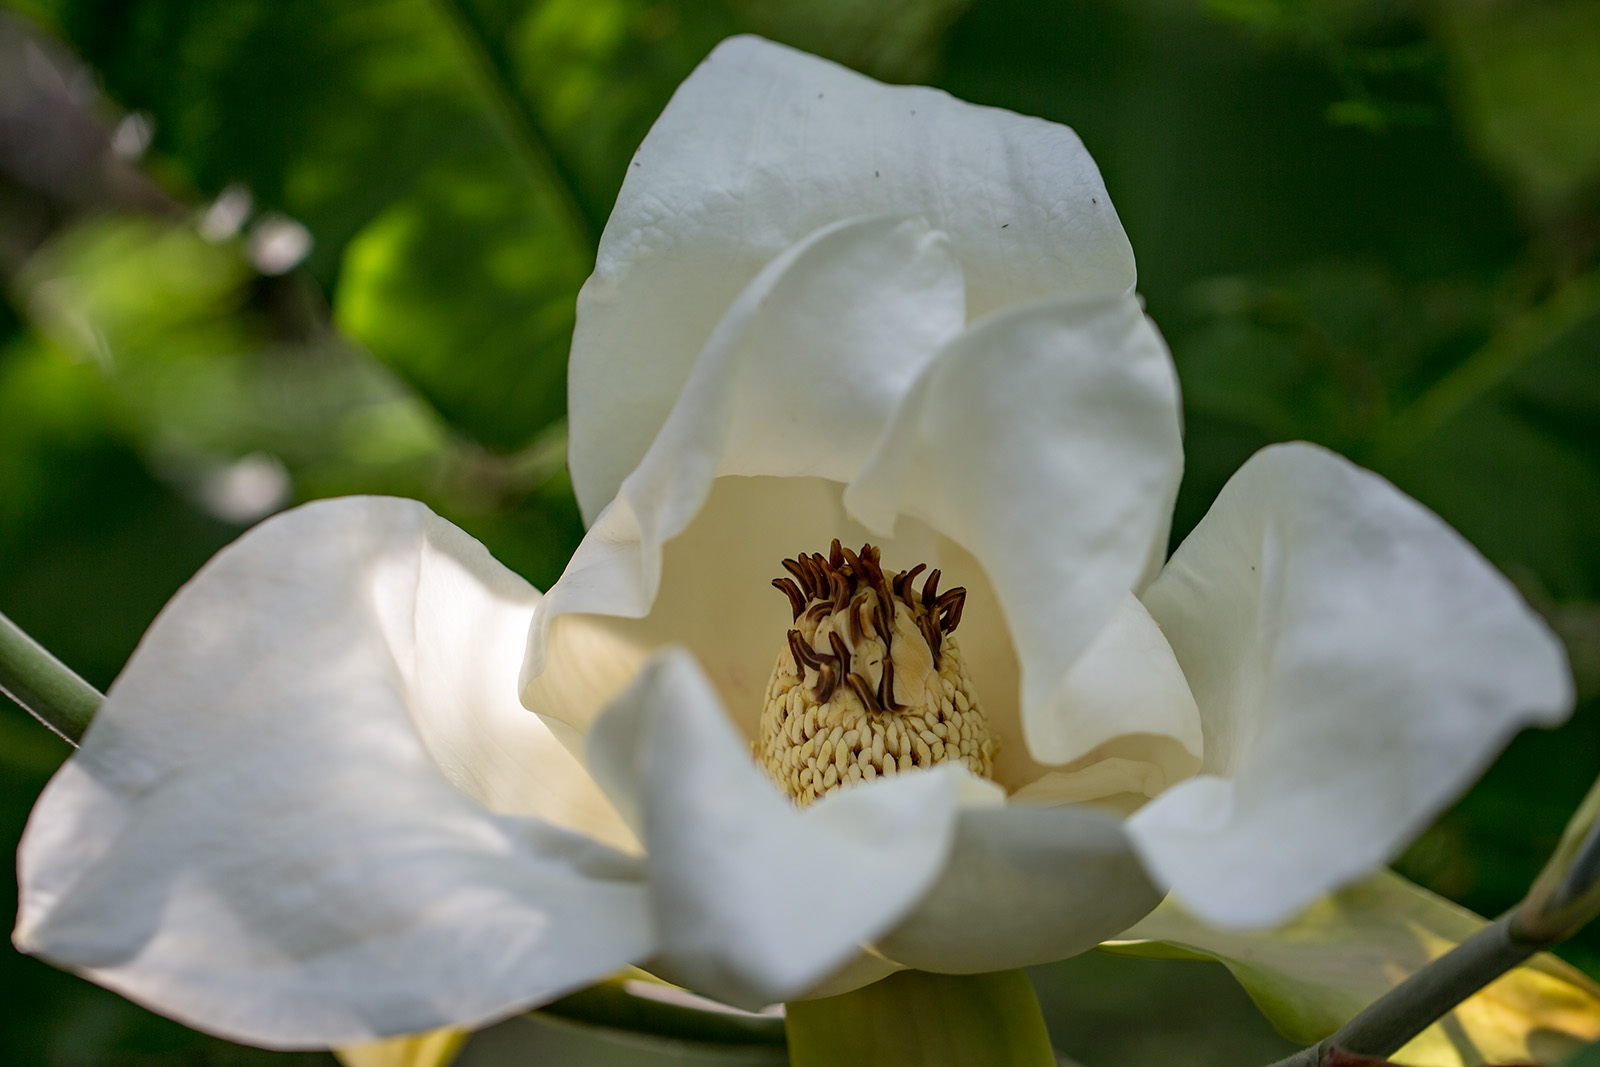 The flower of Magnolia macrophylla